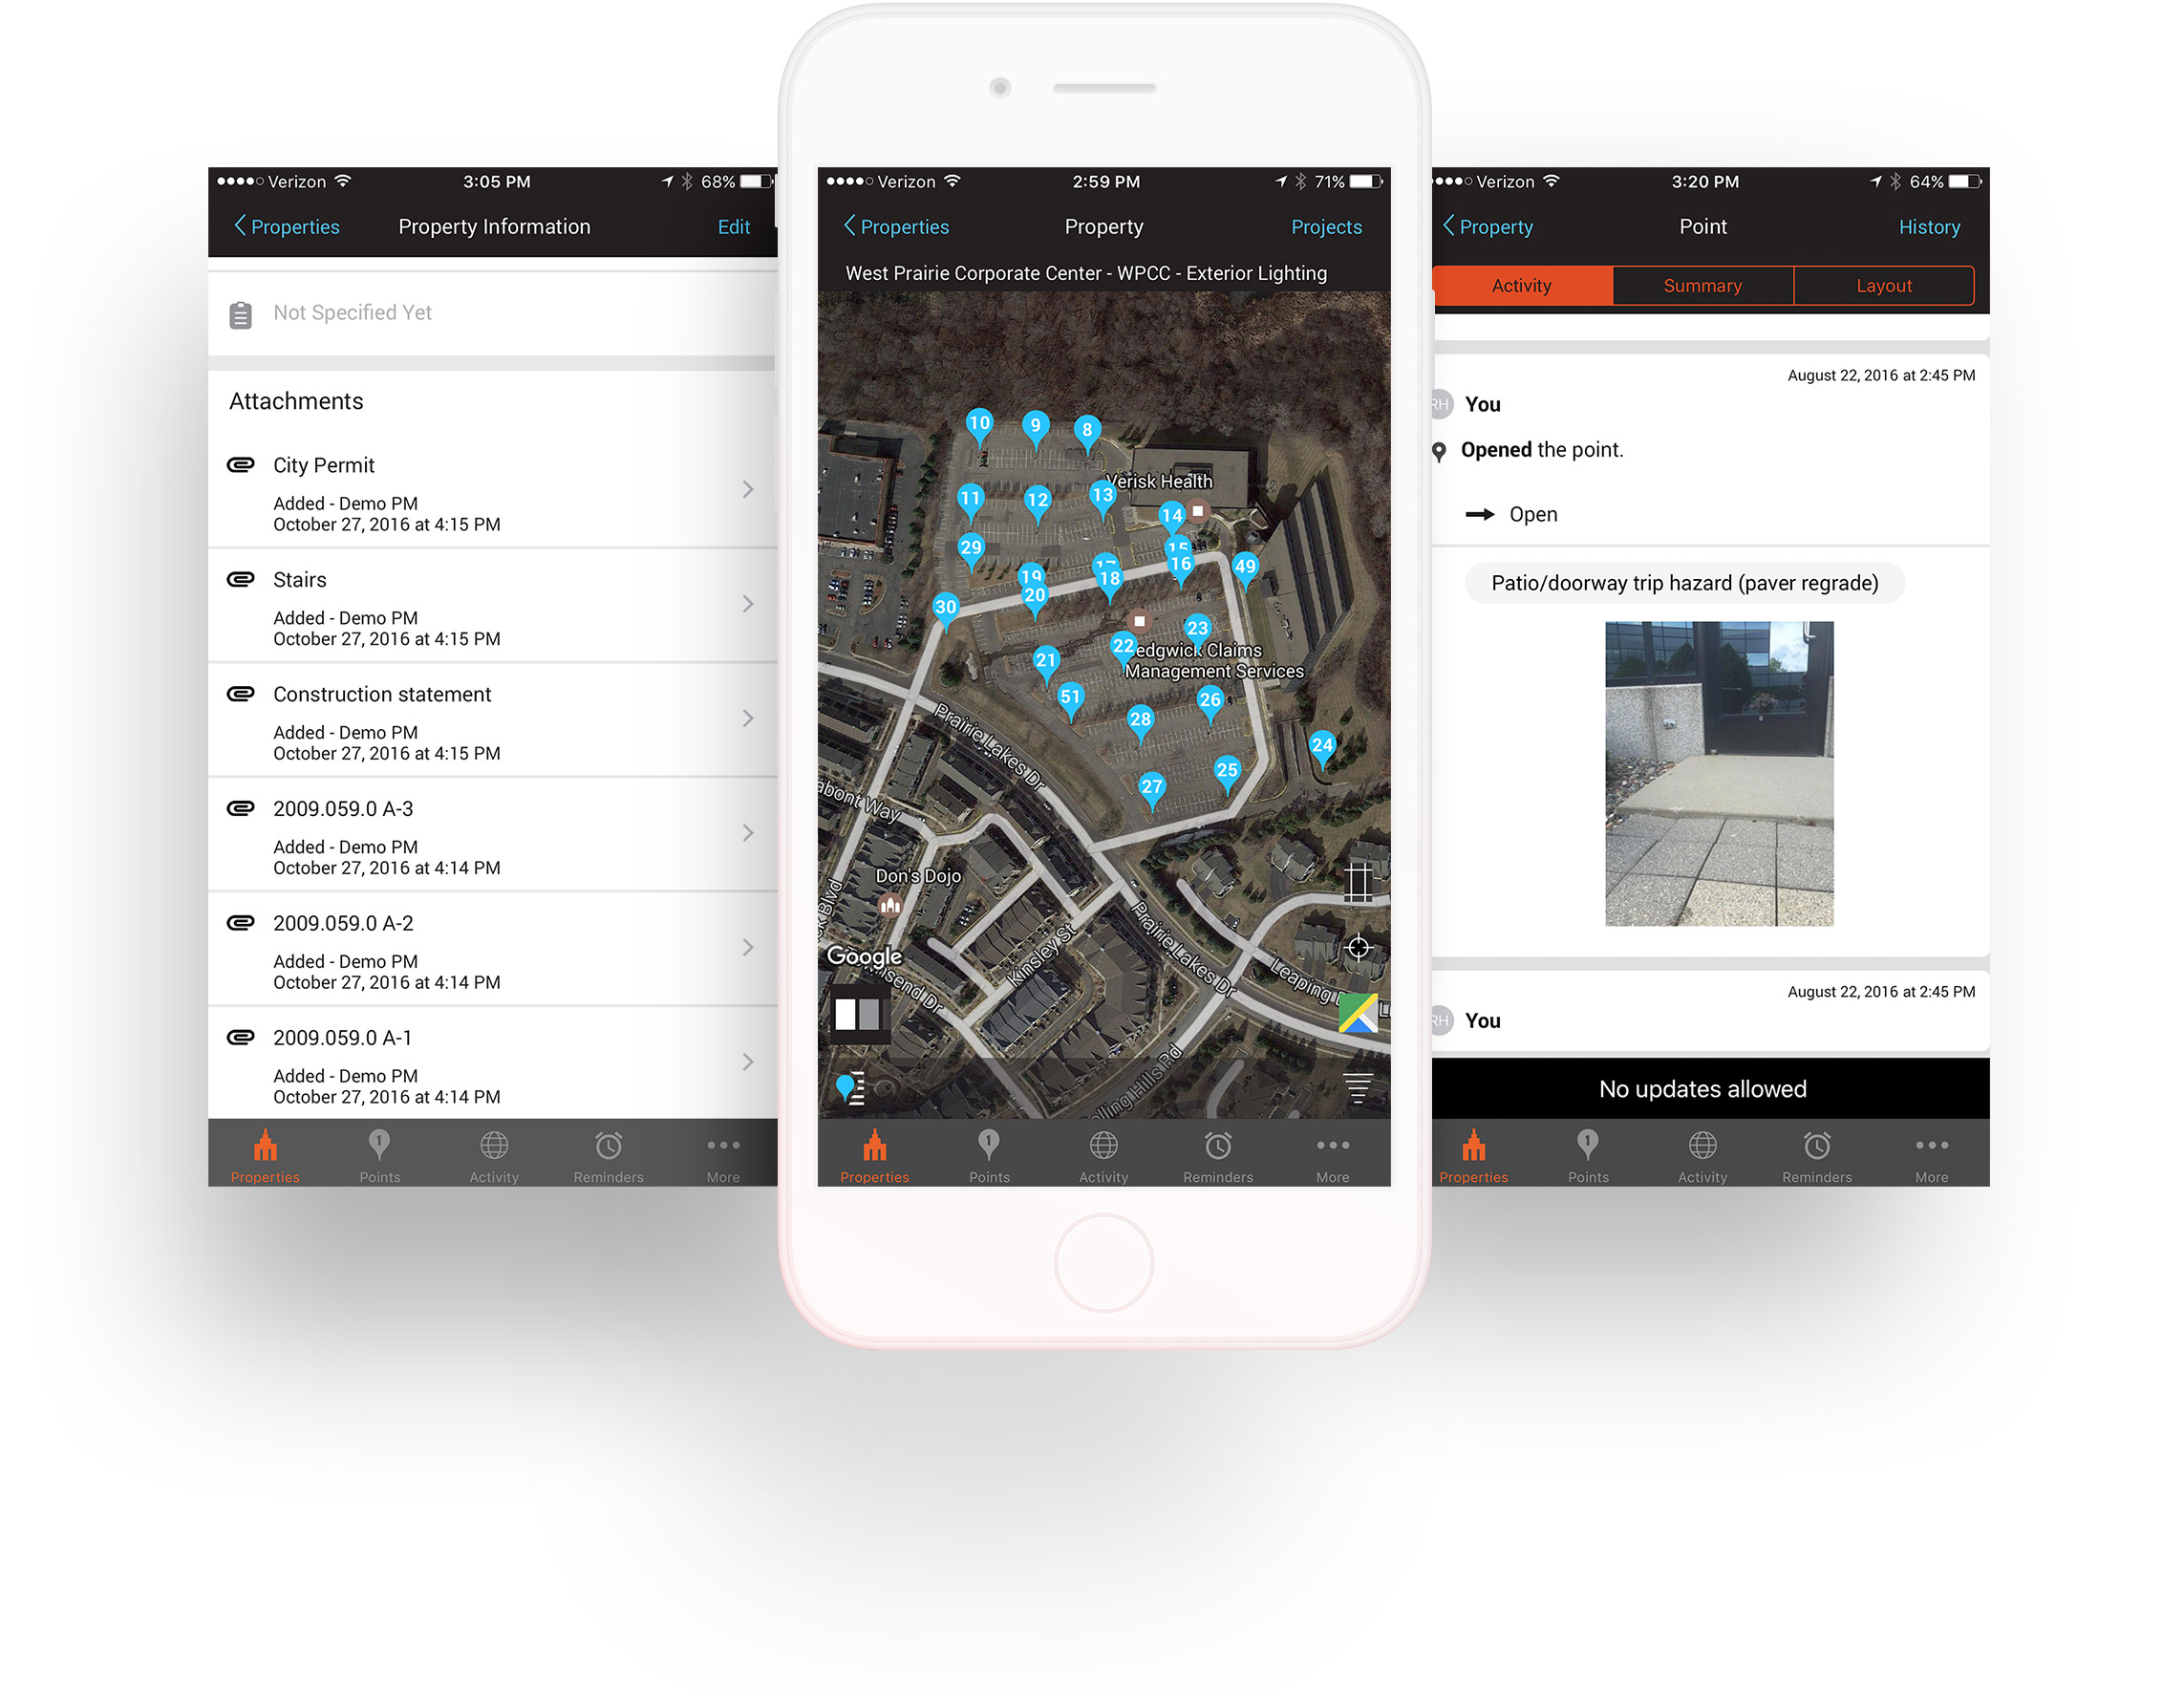 Assessment Feature - For managed and non-managed properties and facilities, One Spot allows you to make customized assessments using geo-tagged photos and comments, accurate maps and image layouts, property tracking, reminder settings, integrated team communication, custom point lists, and access to your digital file cabinet. You'll also be able to create flexible reporting from anywhere.